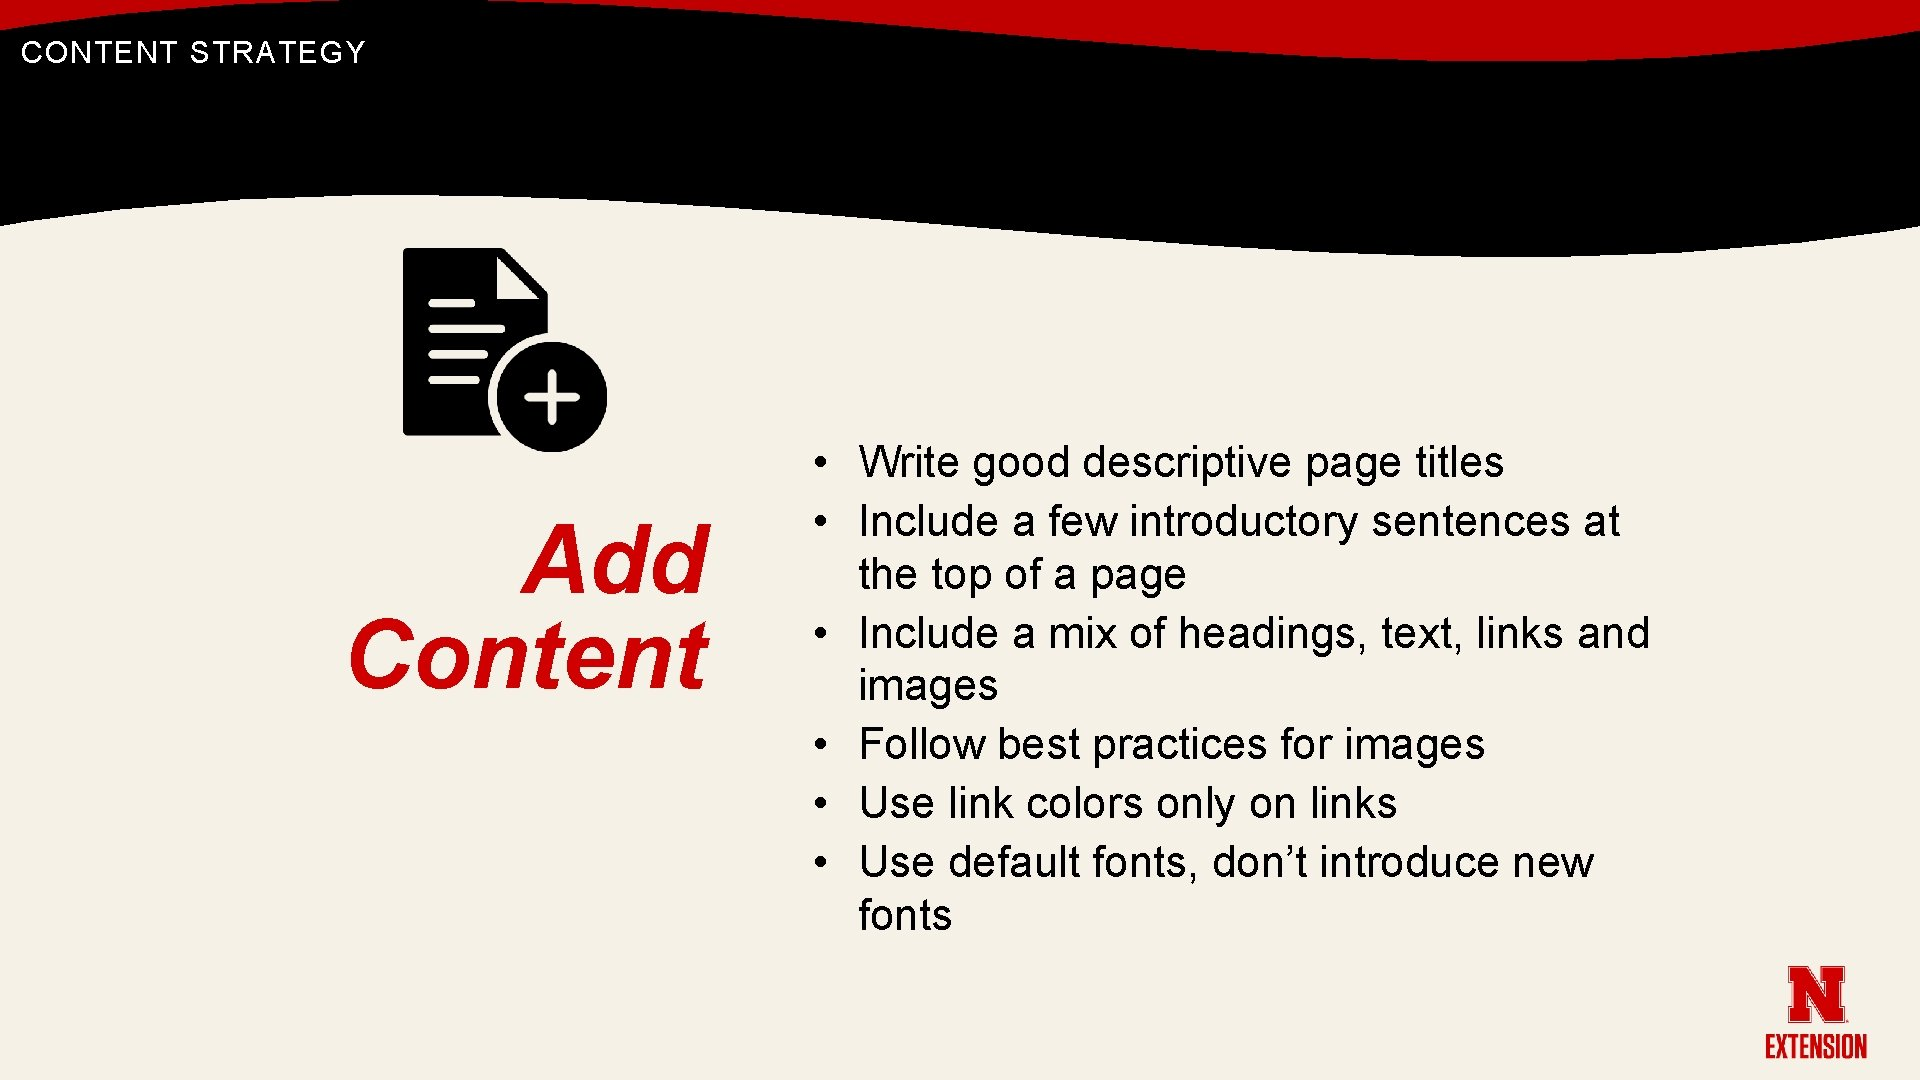 CONTENT STRATEGY Add Content • Write good descriptive page titles • Include a few